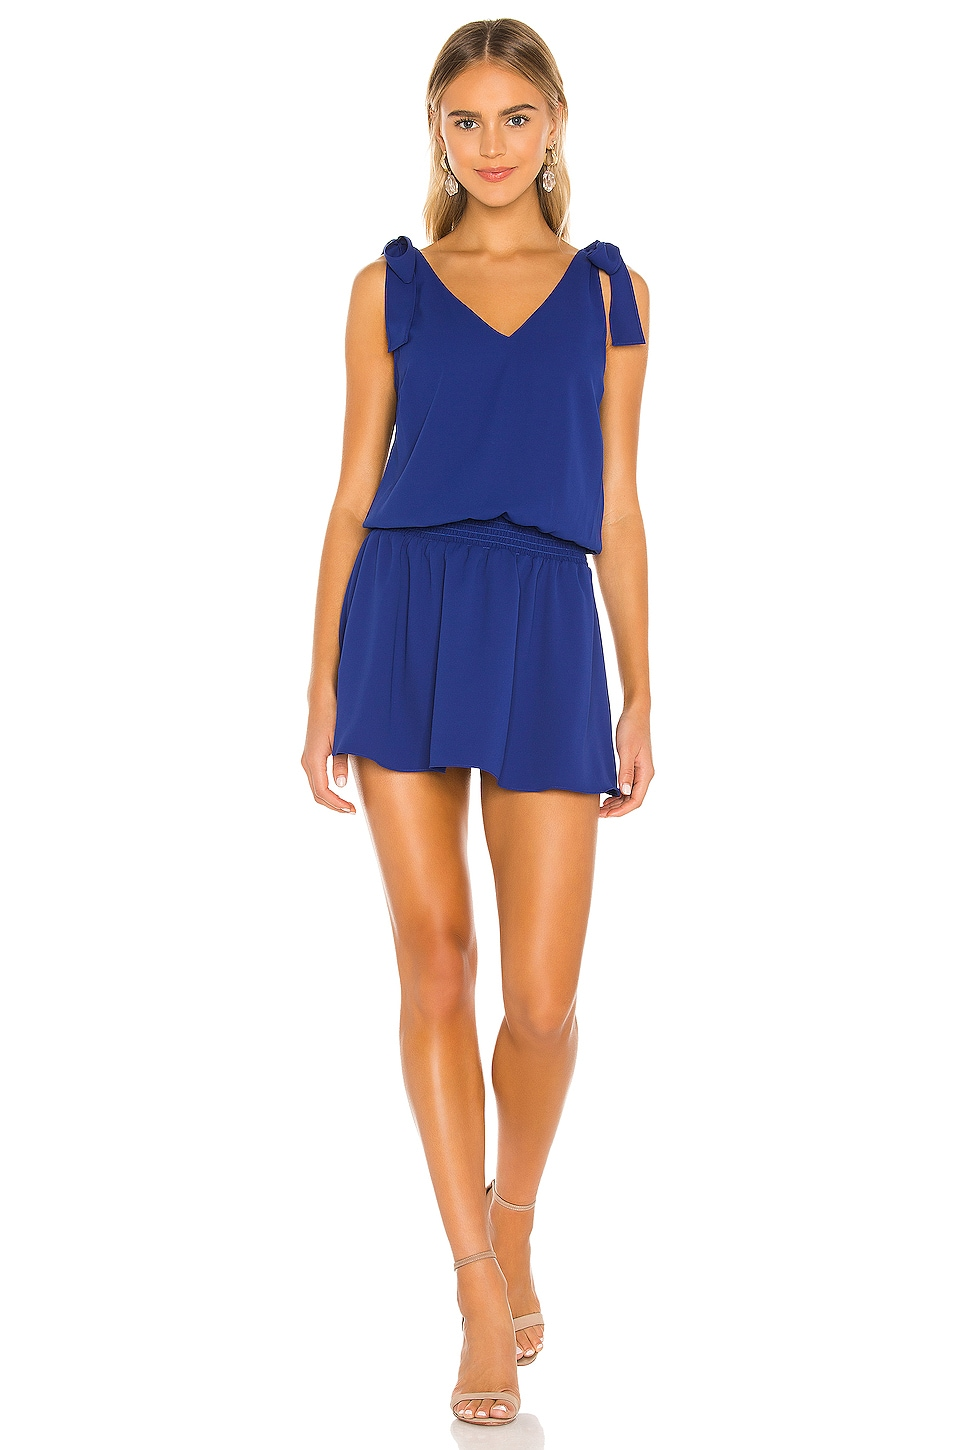 Josephina Dress             Amanda Uprichard                                                                                                       CA$ 272.92 8